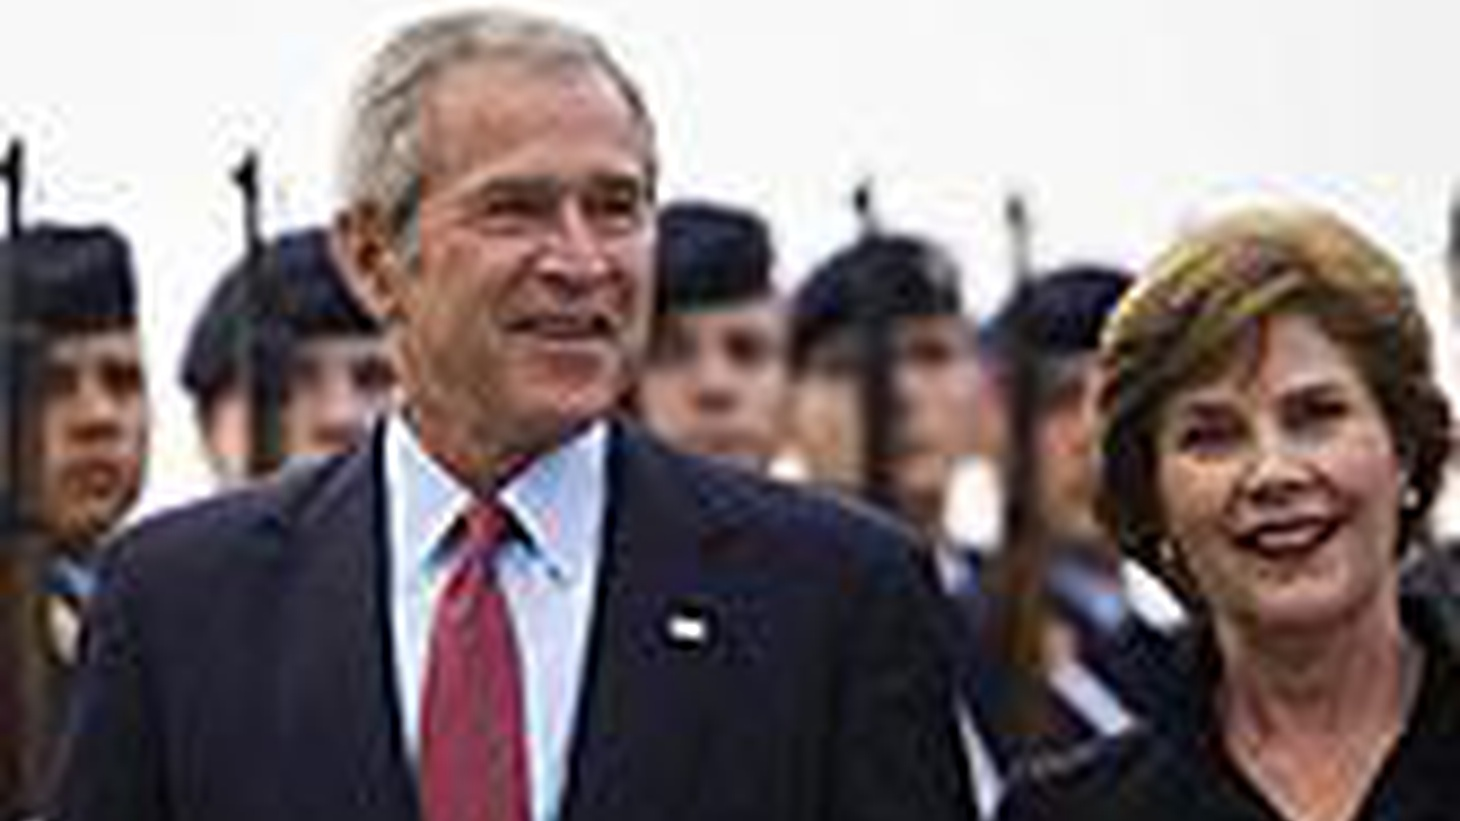 President Bush is in Europe for the G-8 Summit which starts tomorrow, but he's already facing criticism for his proposal on global warming. With new leaders in Europe, will Bush be able to form new political alliances? On Reporter's Notebook, the war that changed the map of the Middle East - a look back at the six-day Arab Israeli War. Sara Terry guest hosts.